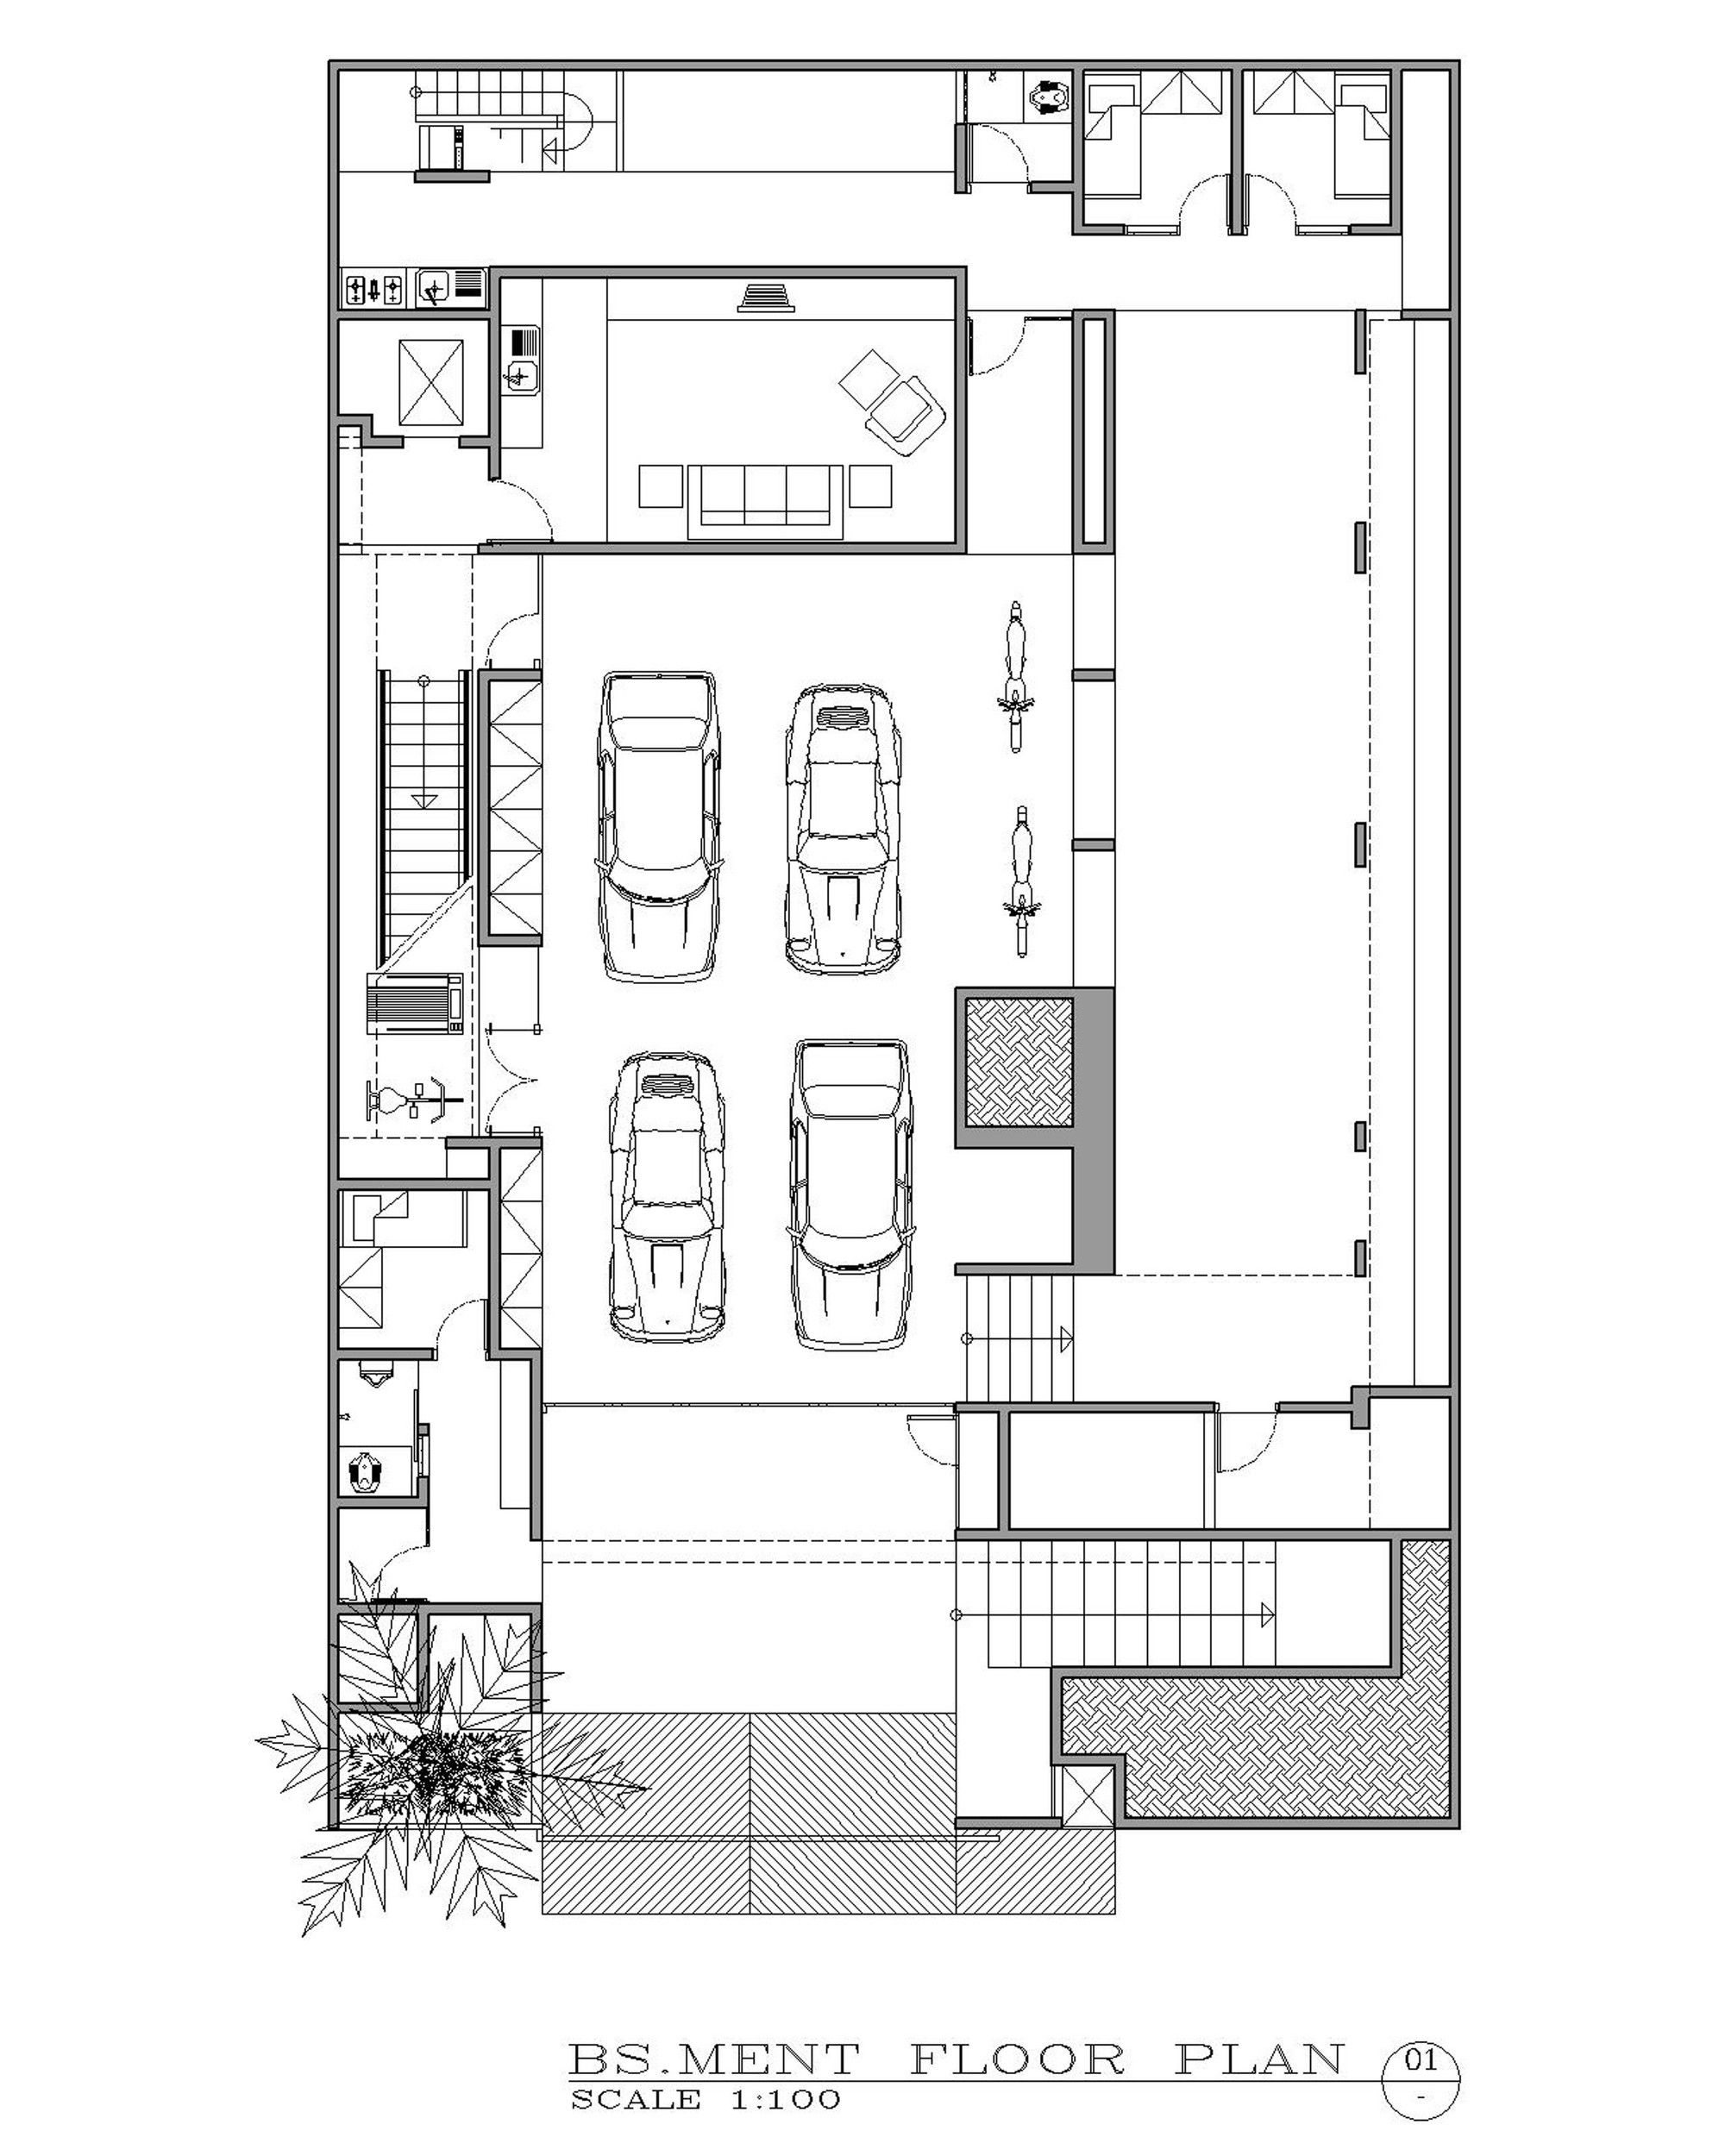 hight resolution of image 16 of 20 from gallery of ben house gp gets architects floor plan